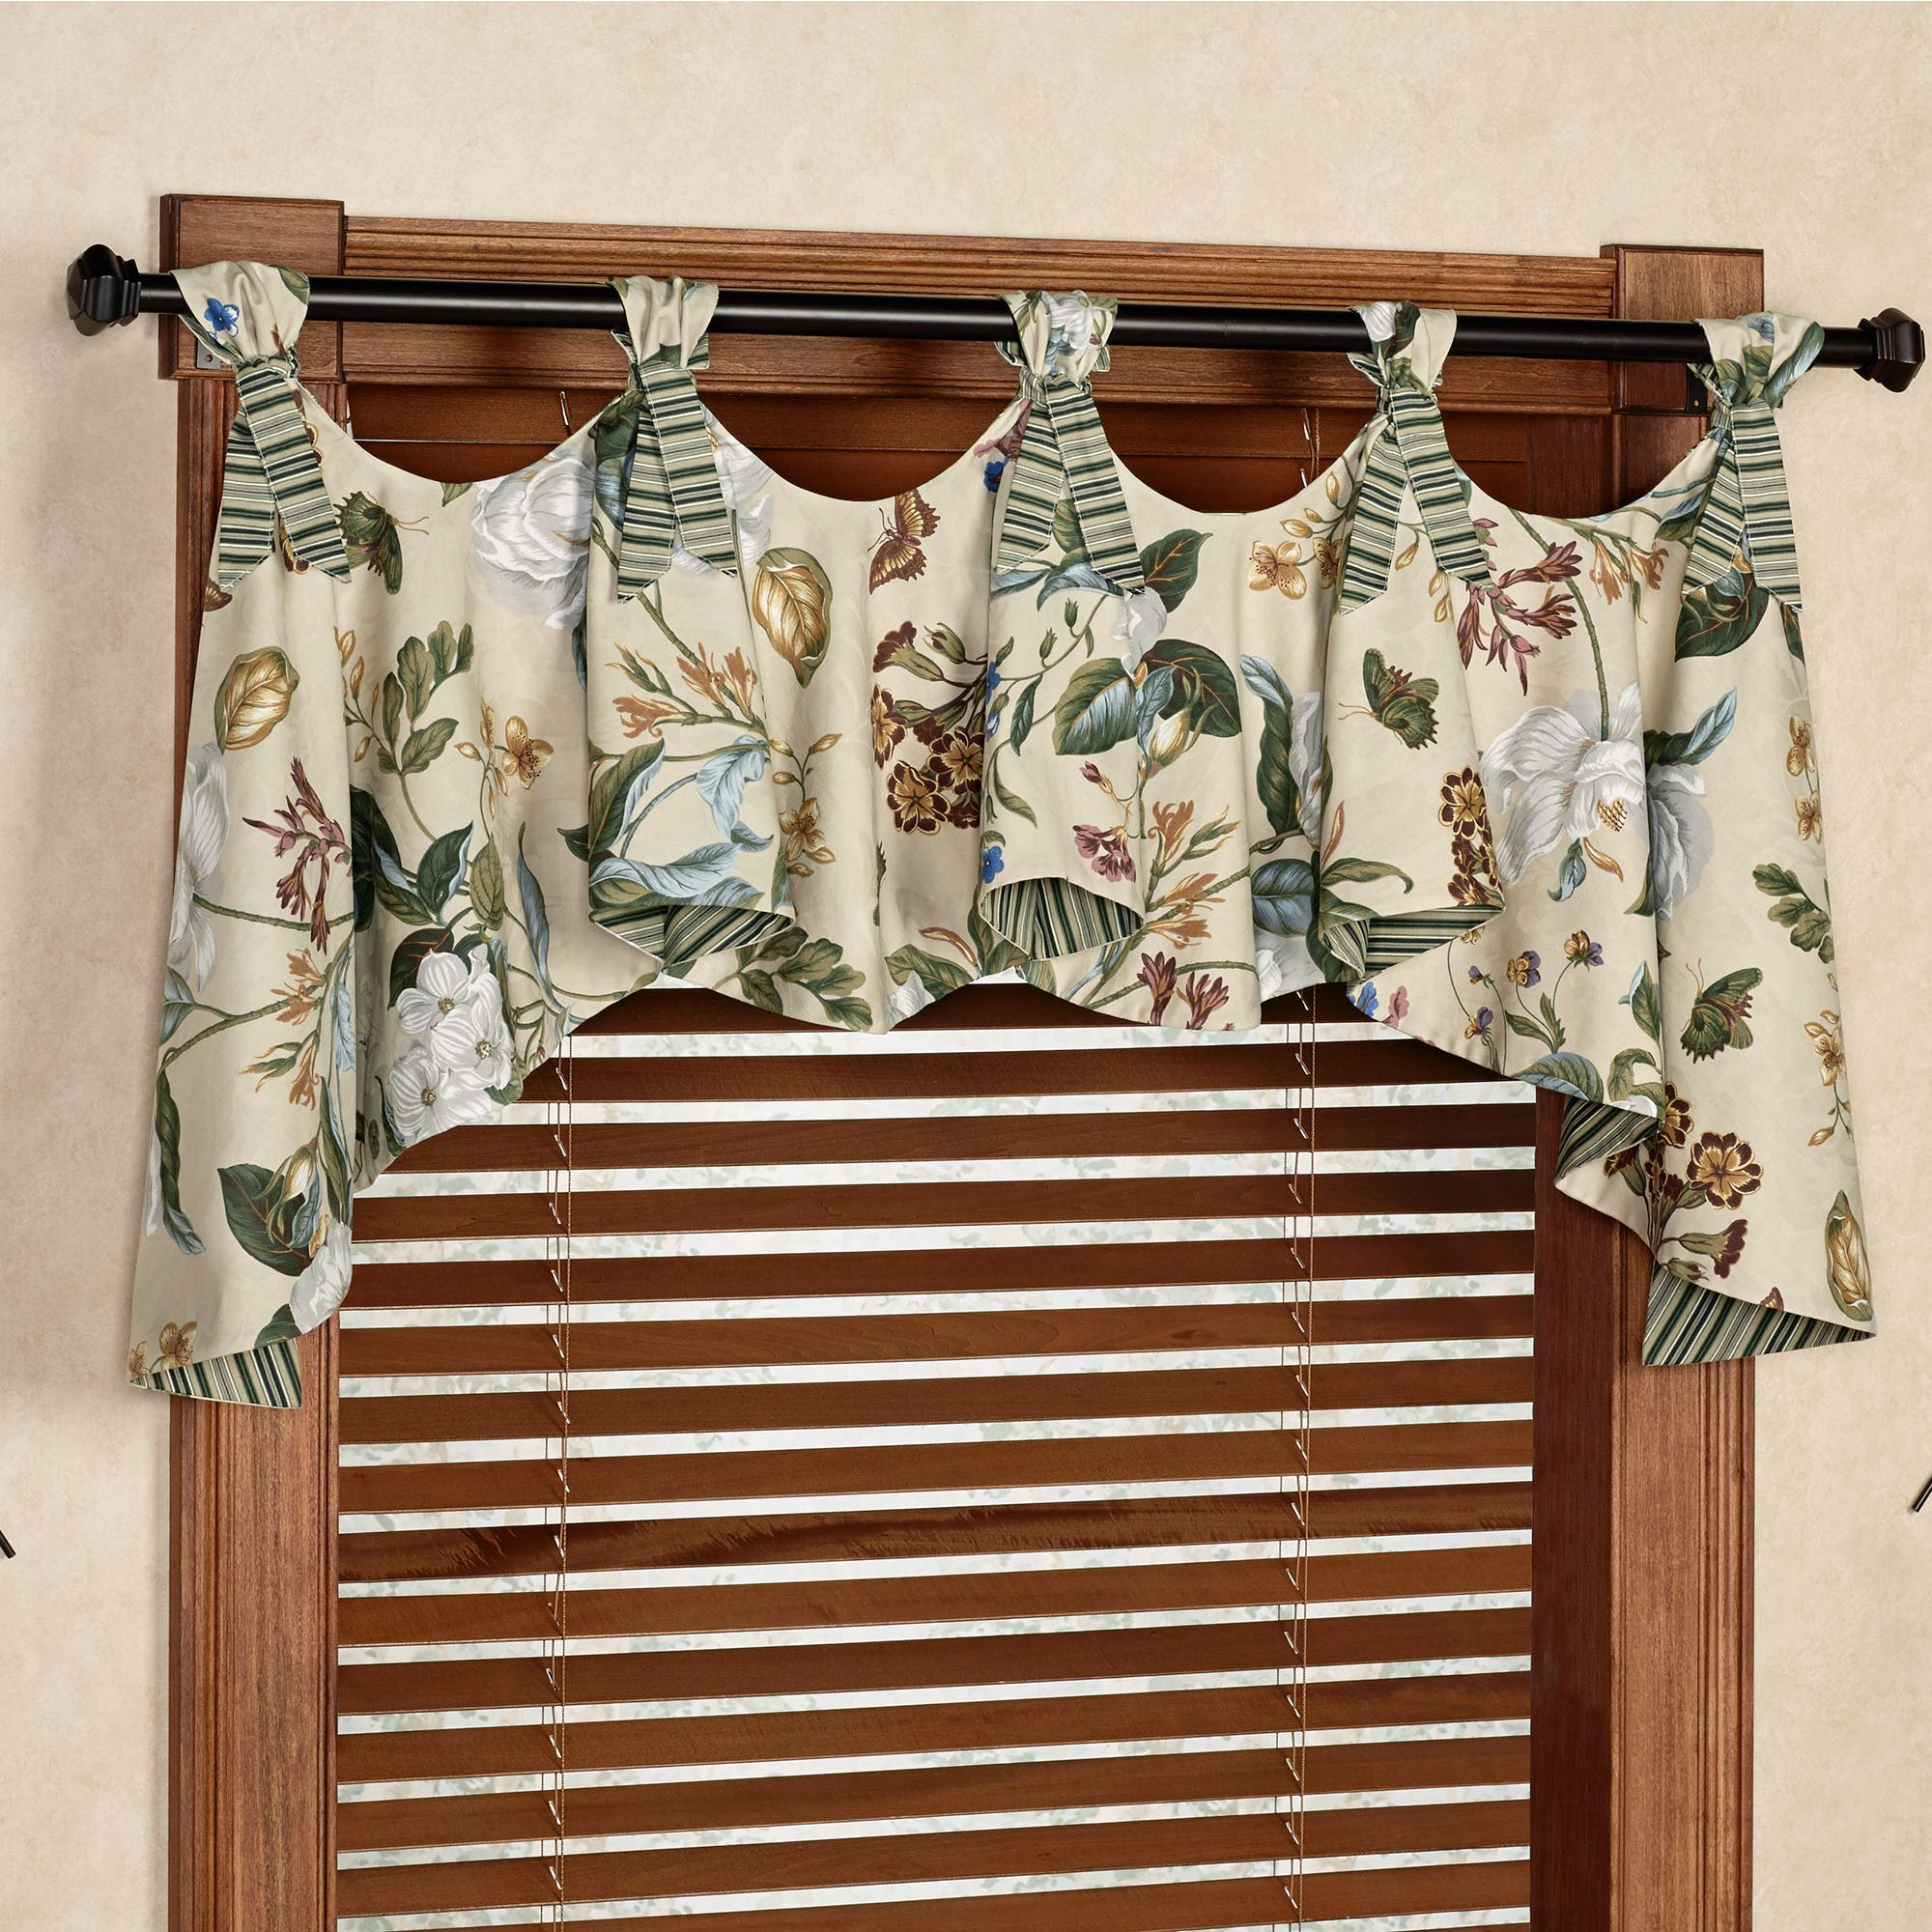 doors accessories how you diy valances ideas smart rooms love chic valance windows spaces for and window treatments to box these ll cornice